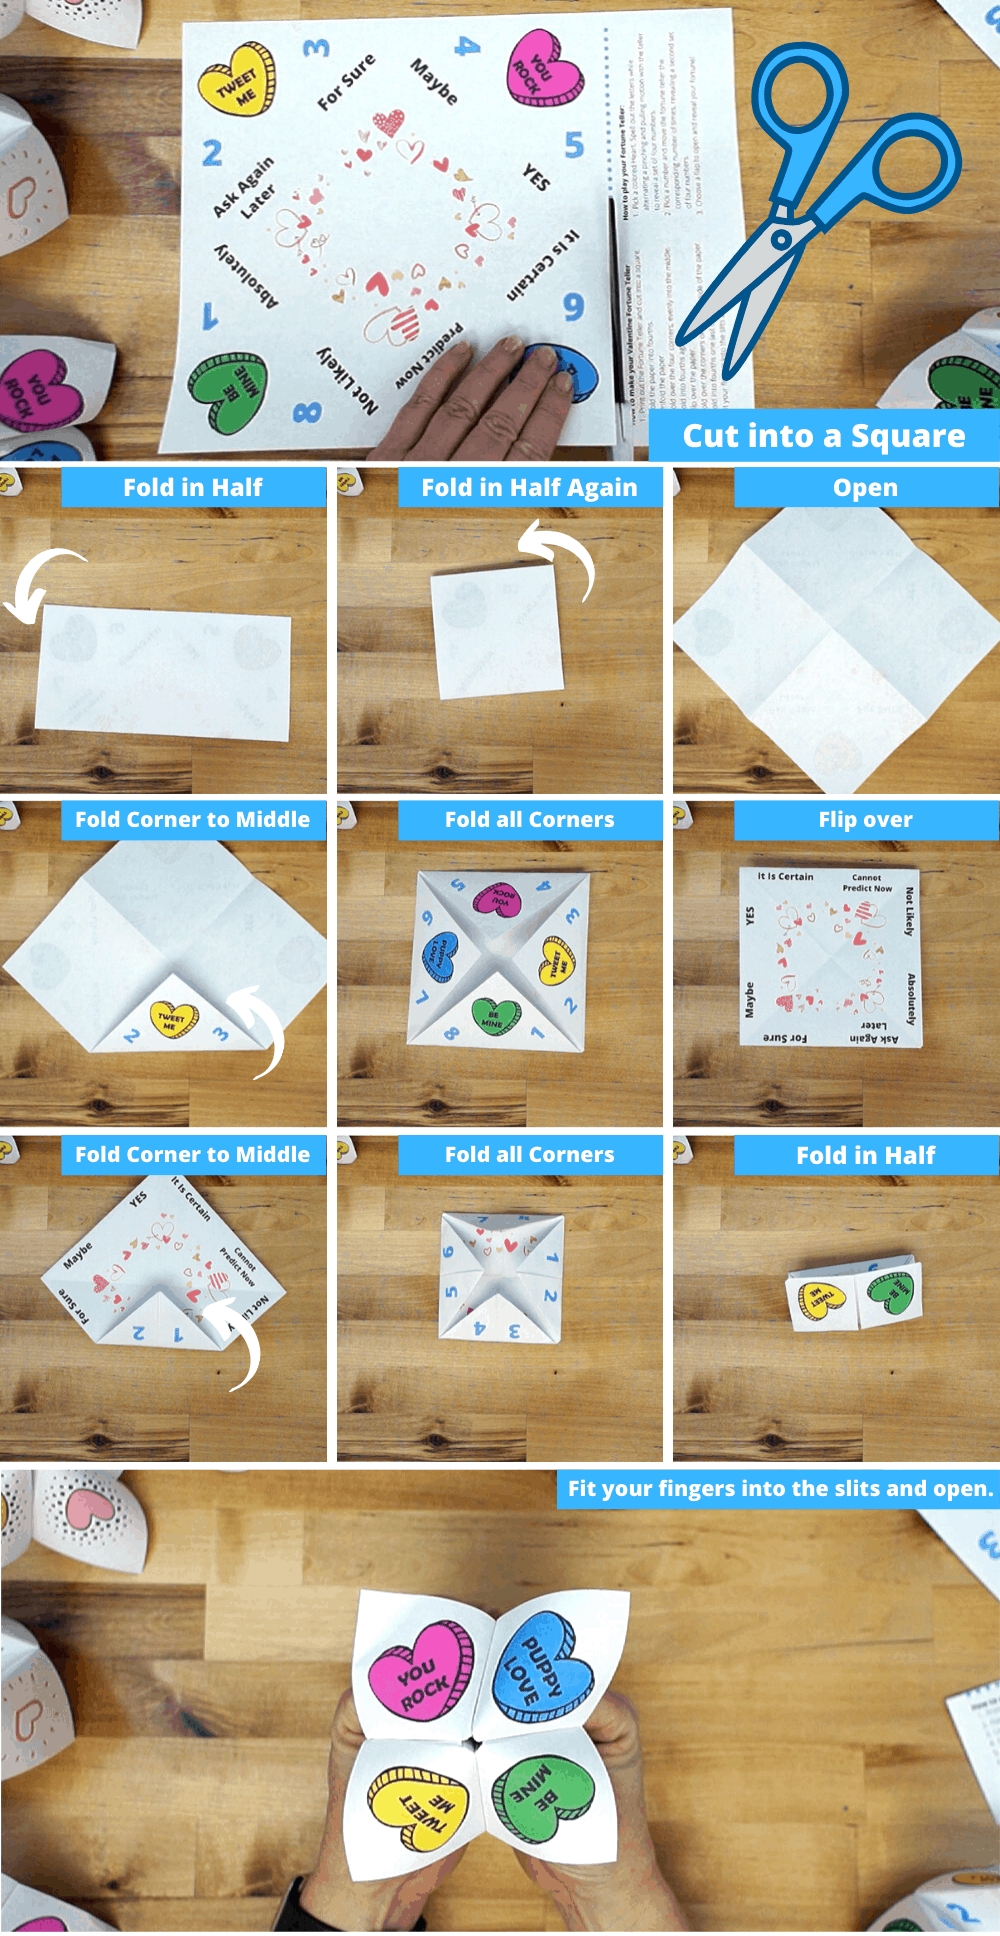 step by step visual guide to folding a paper fortune teller